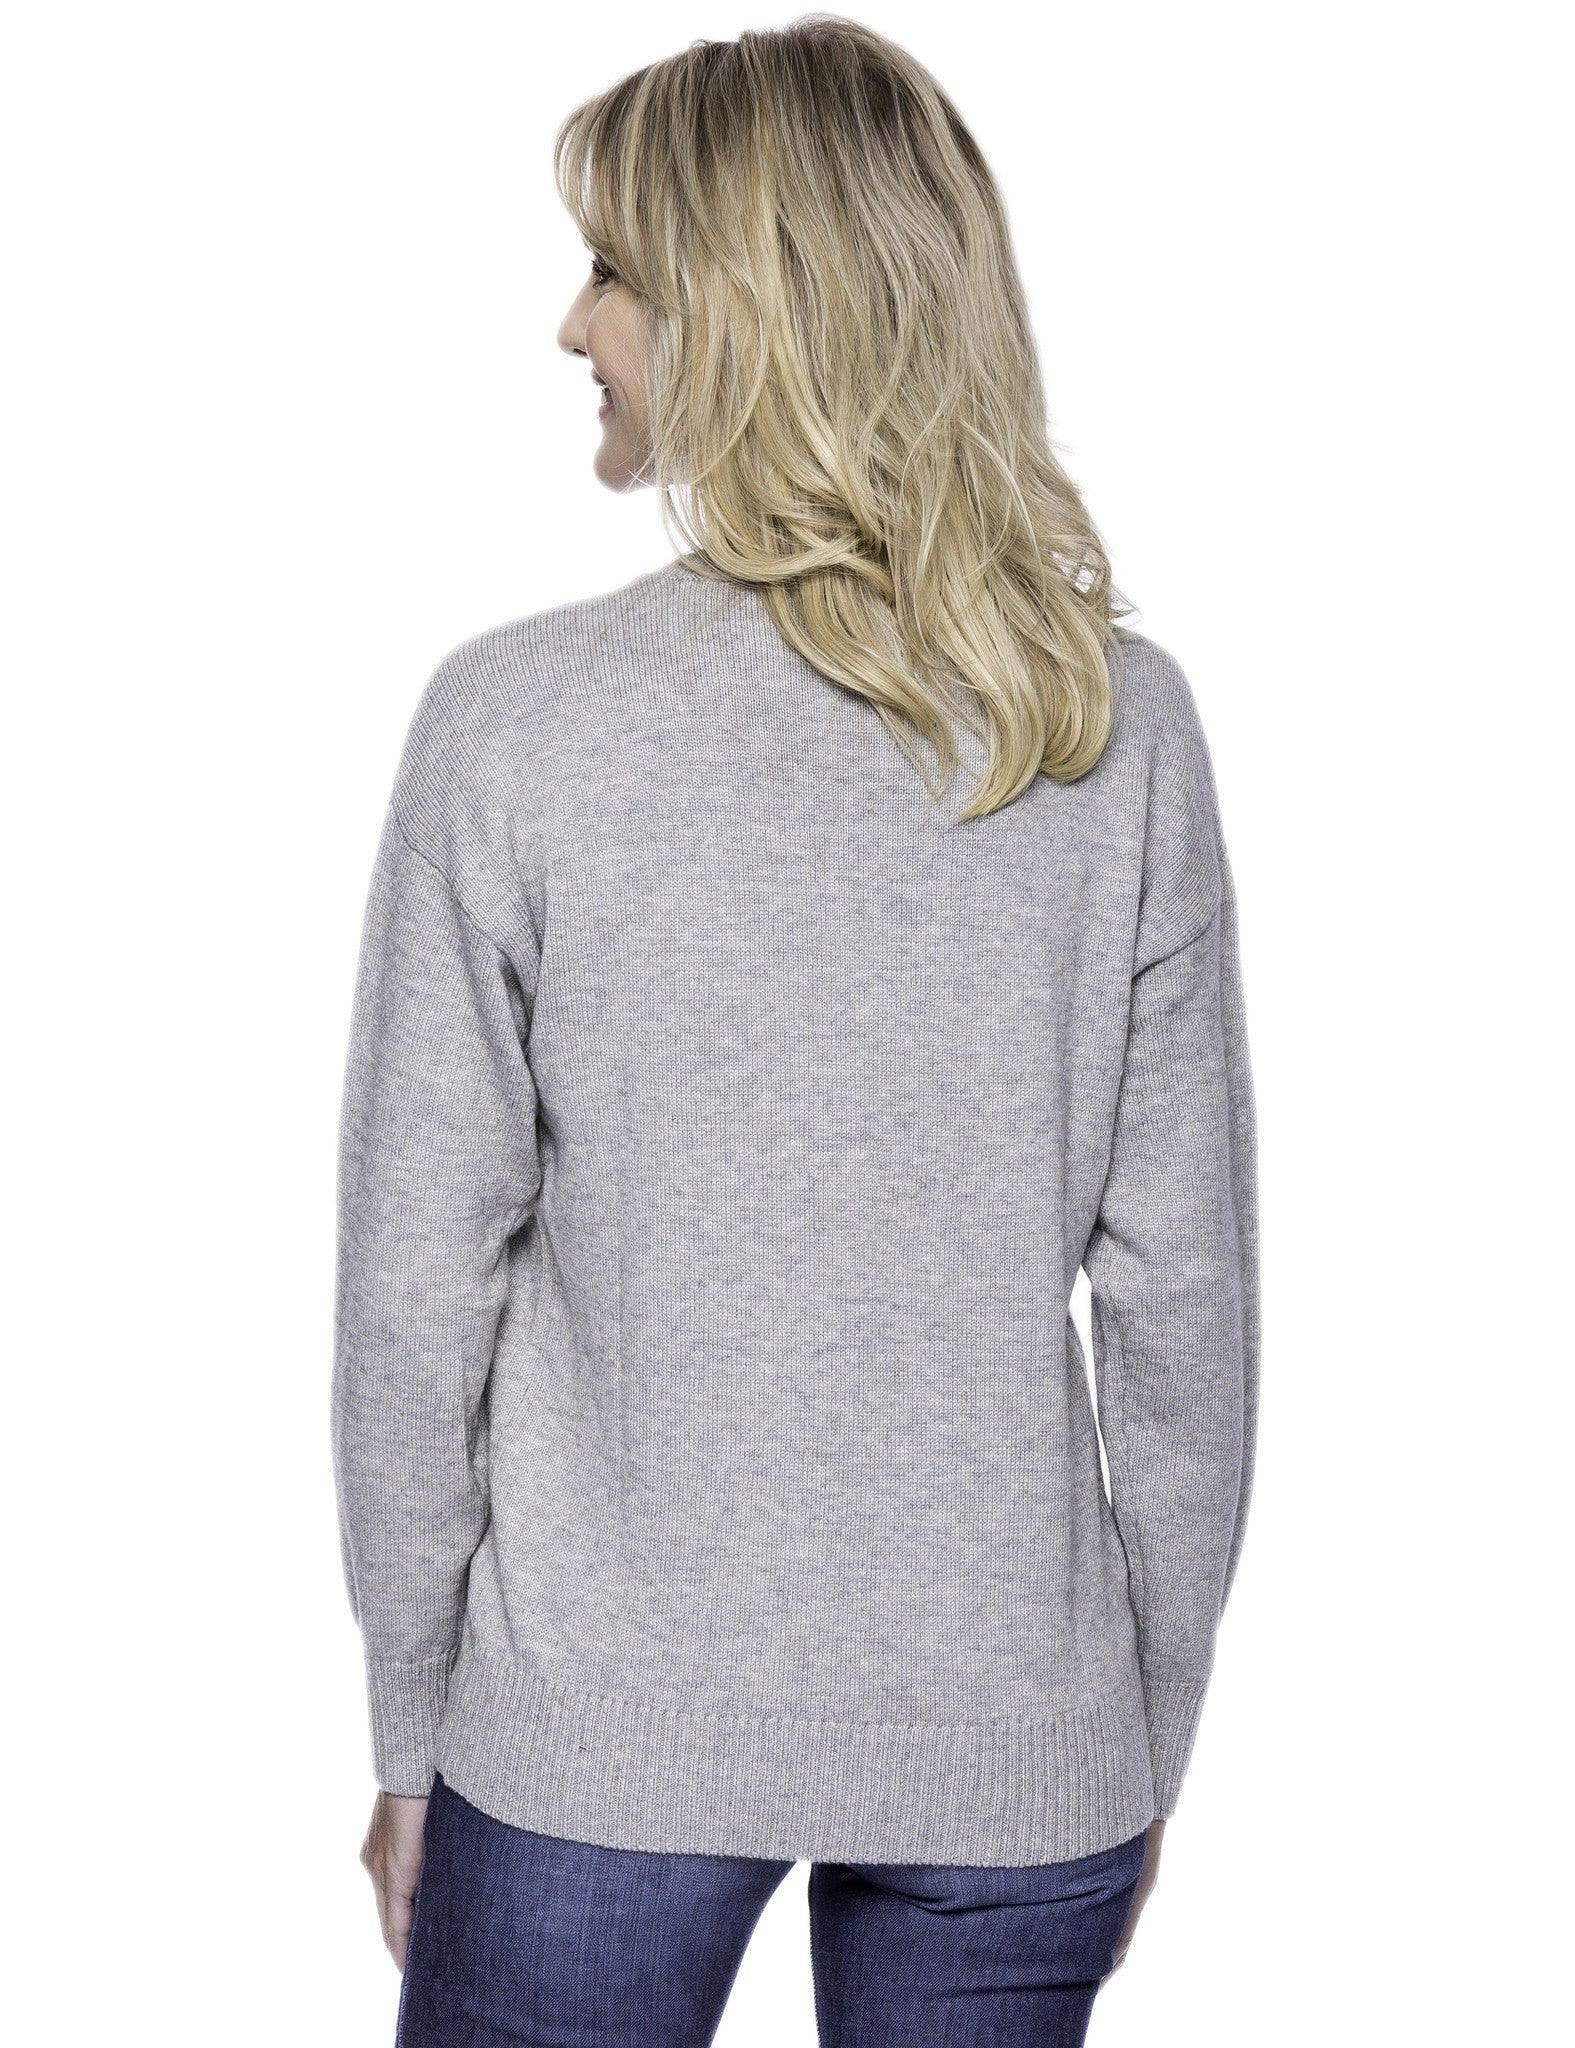 Tocco Reale Women's Cashmere Blend Crew Neck Sweater with Drop Shoulder - Heather Grey